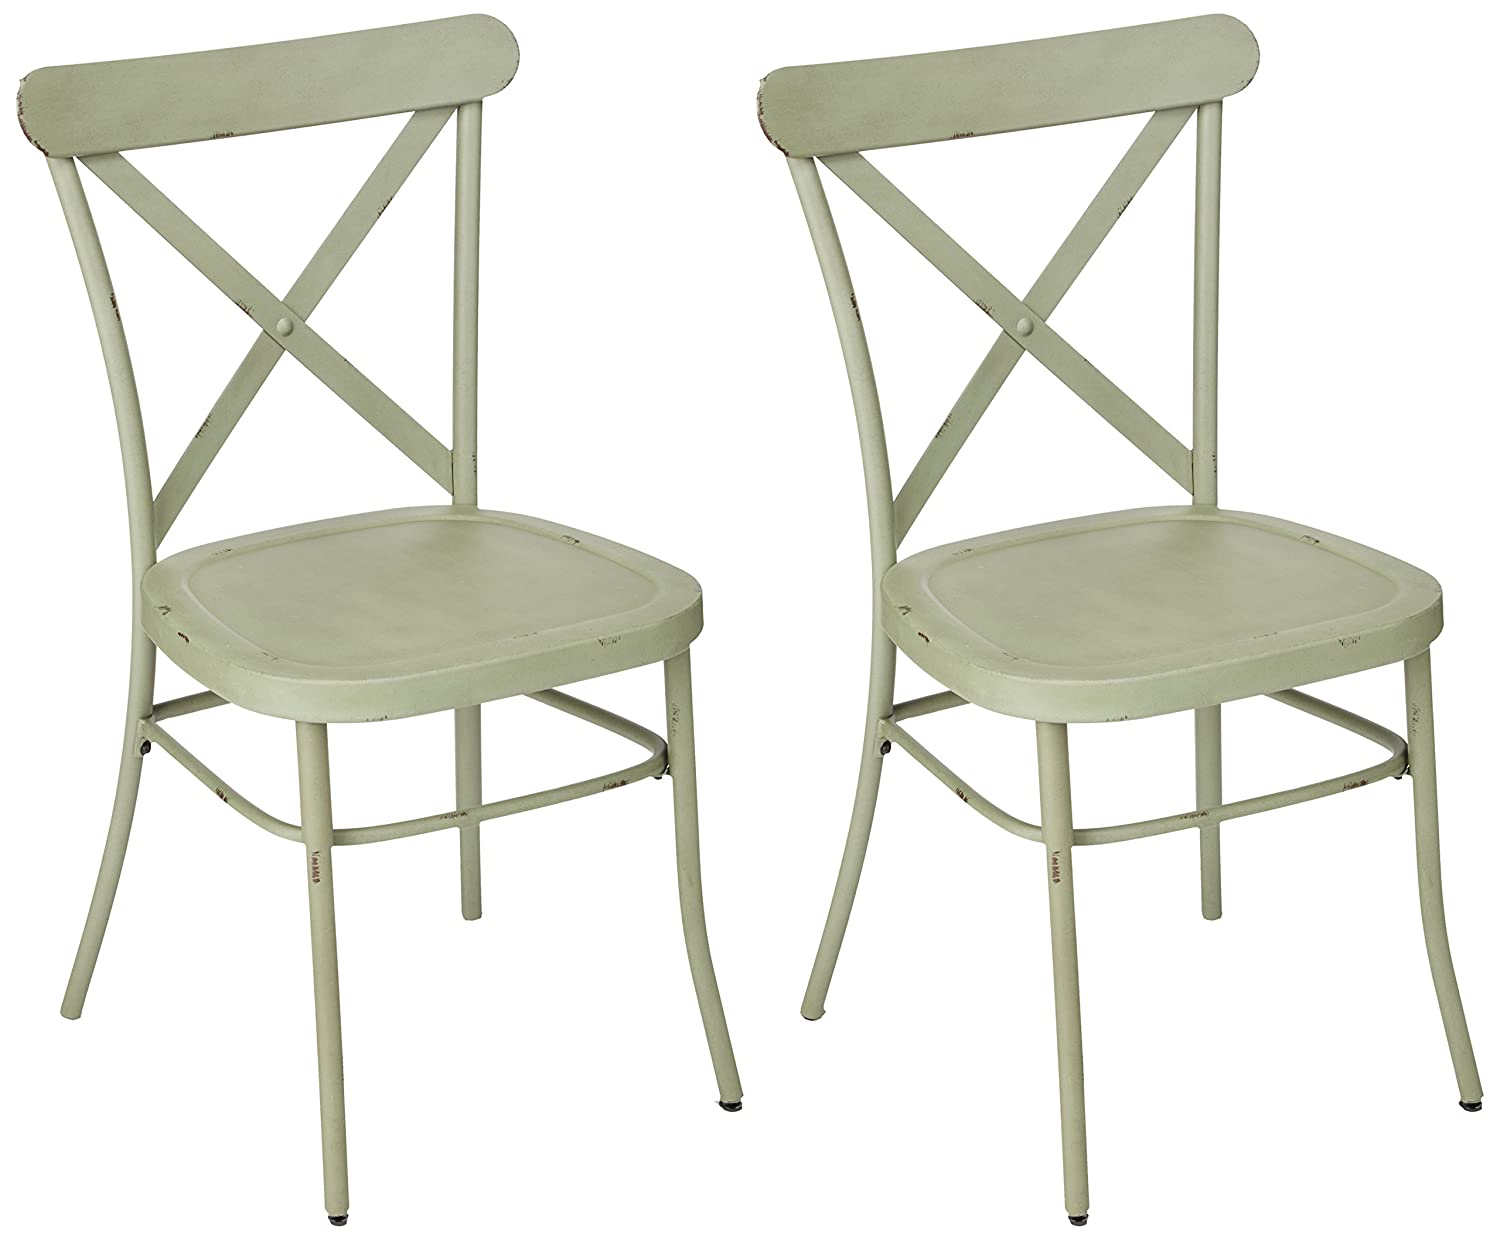 Ashley Furniture Signature Design – Minnona Dining Side Chair – Set of 2 – Cross Back – Vintage Casual Style – Antique Light Green Finished Metal